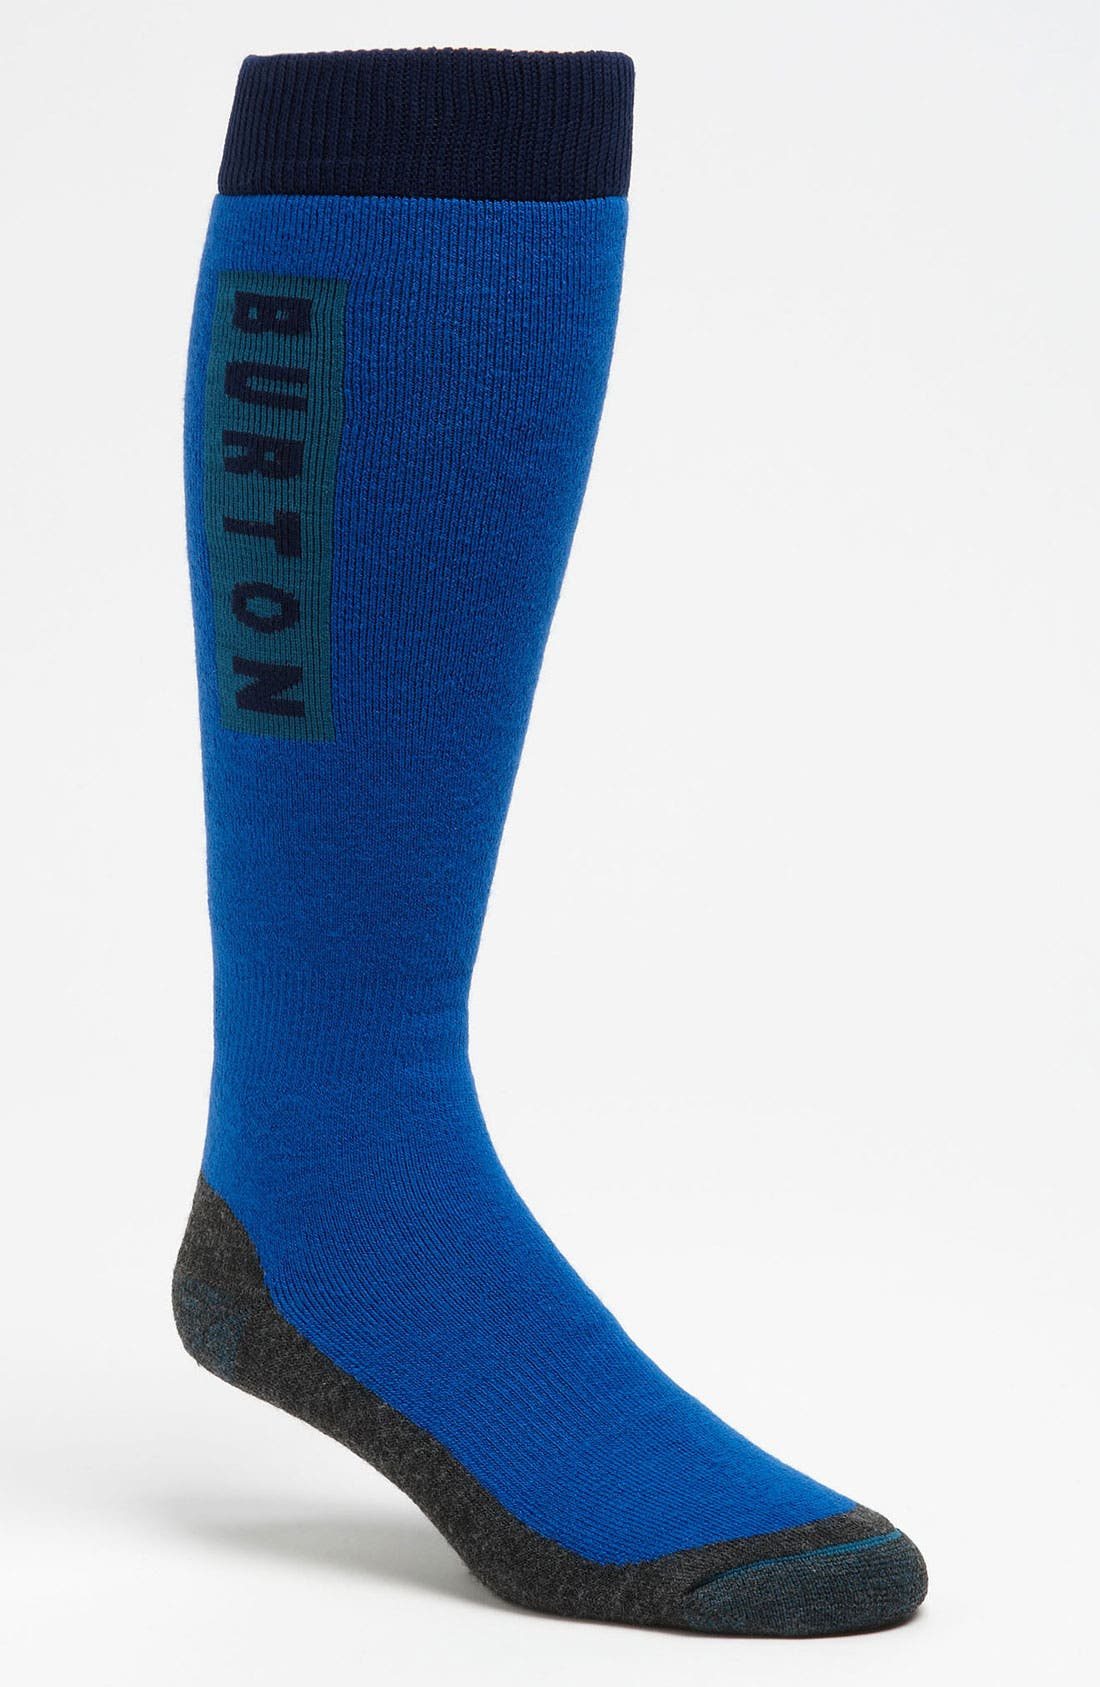 Alternate Image 1 Selected - Burton 'Emblem' Socks